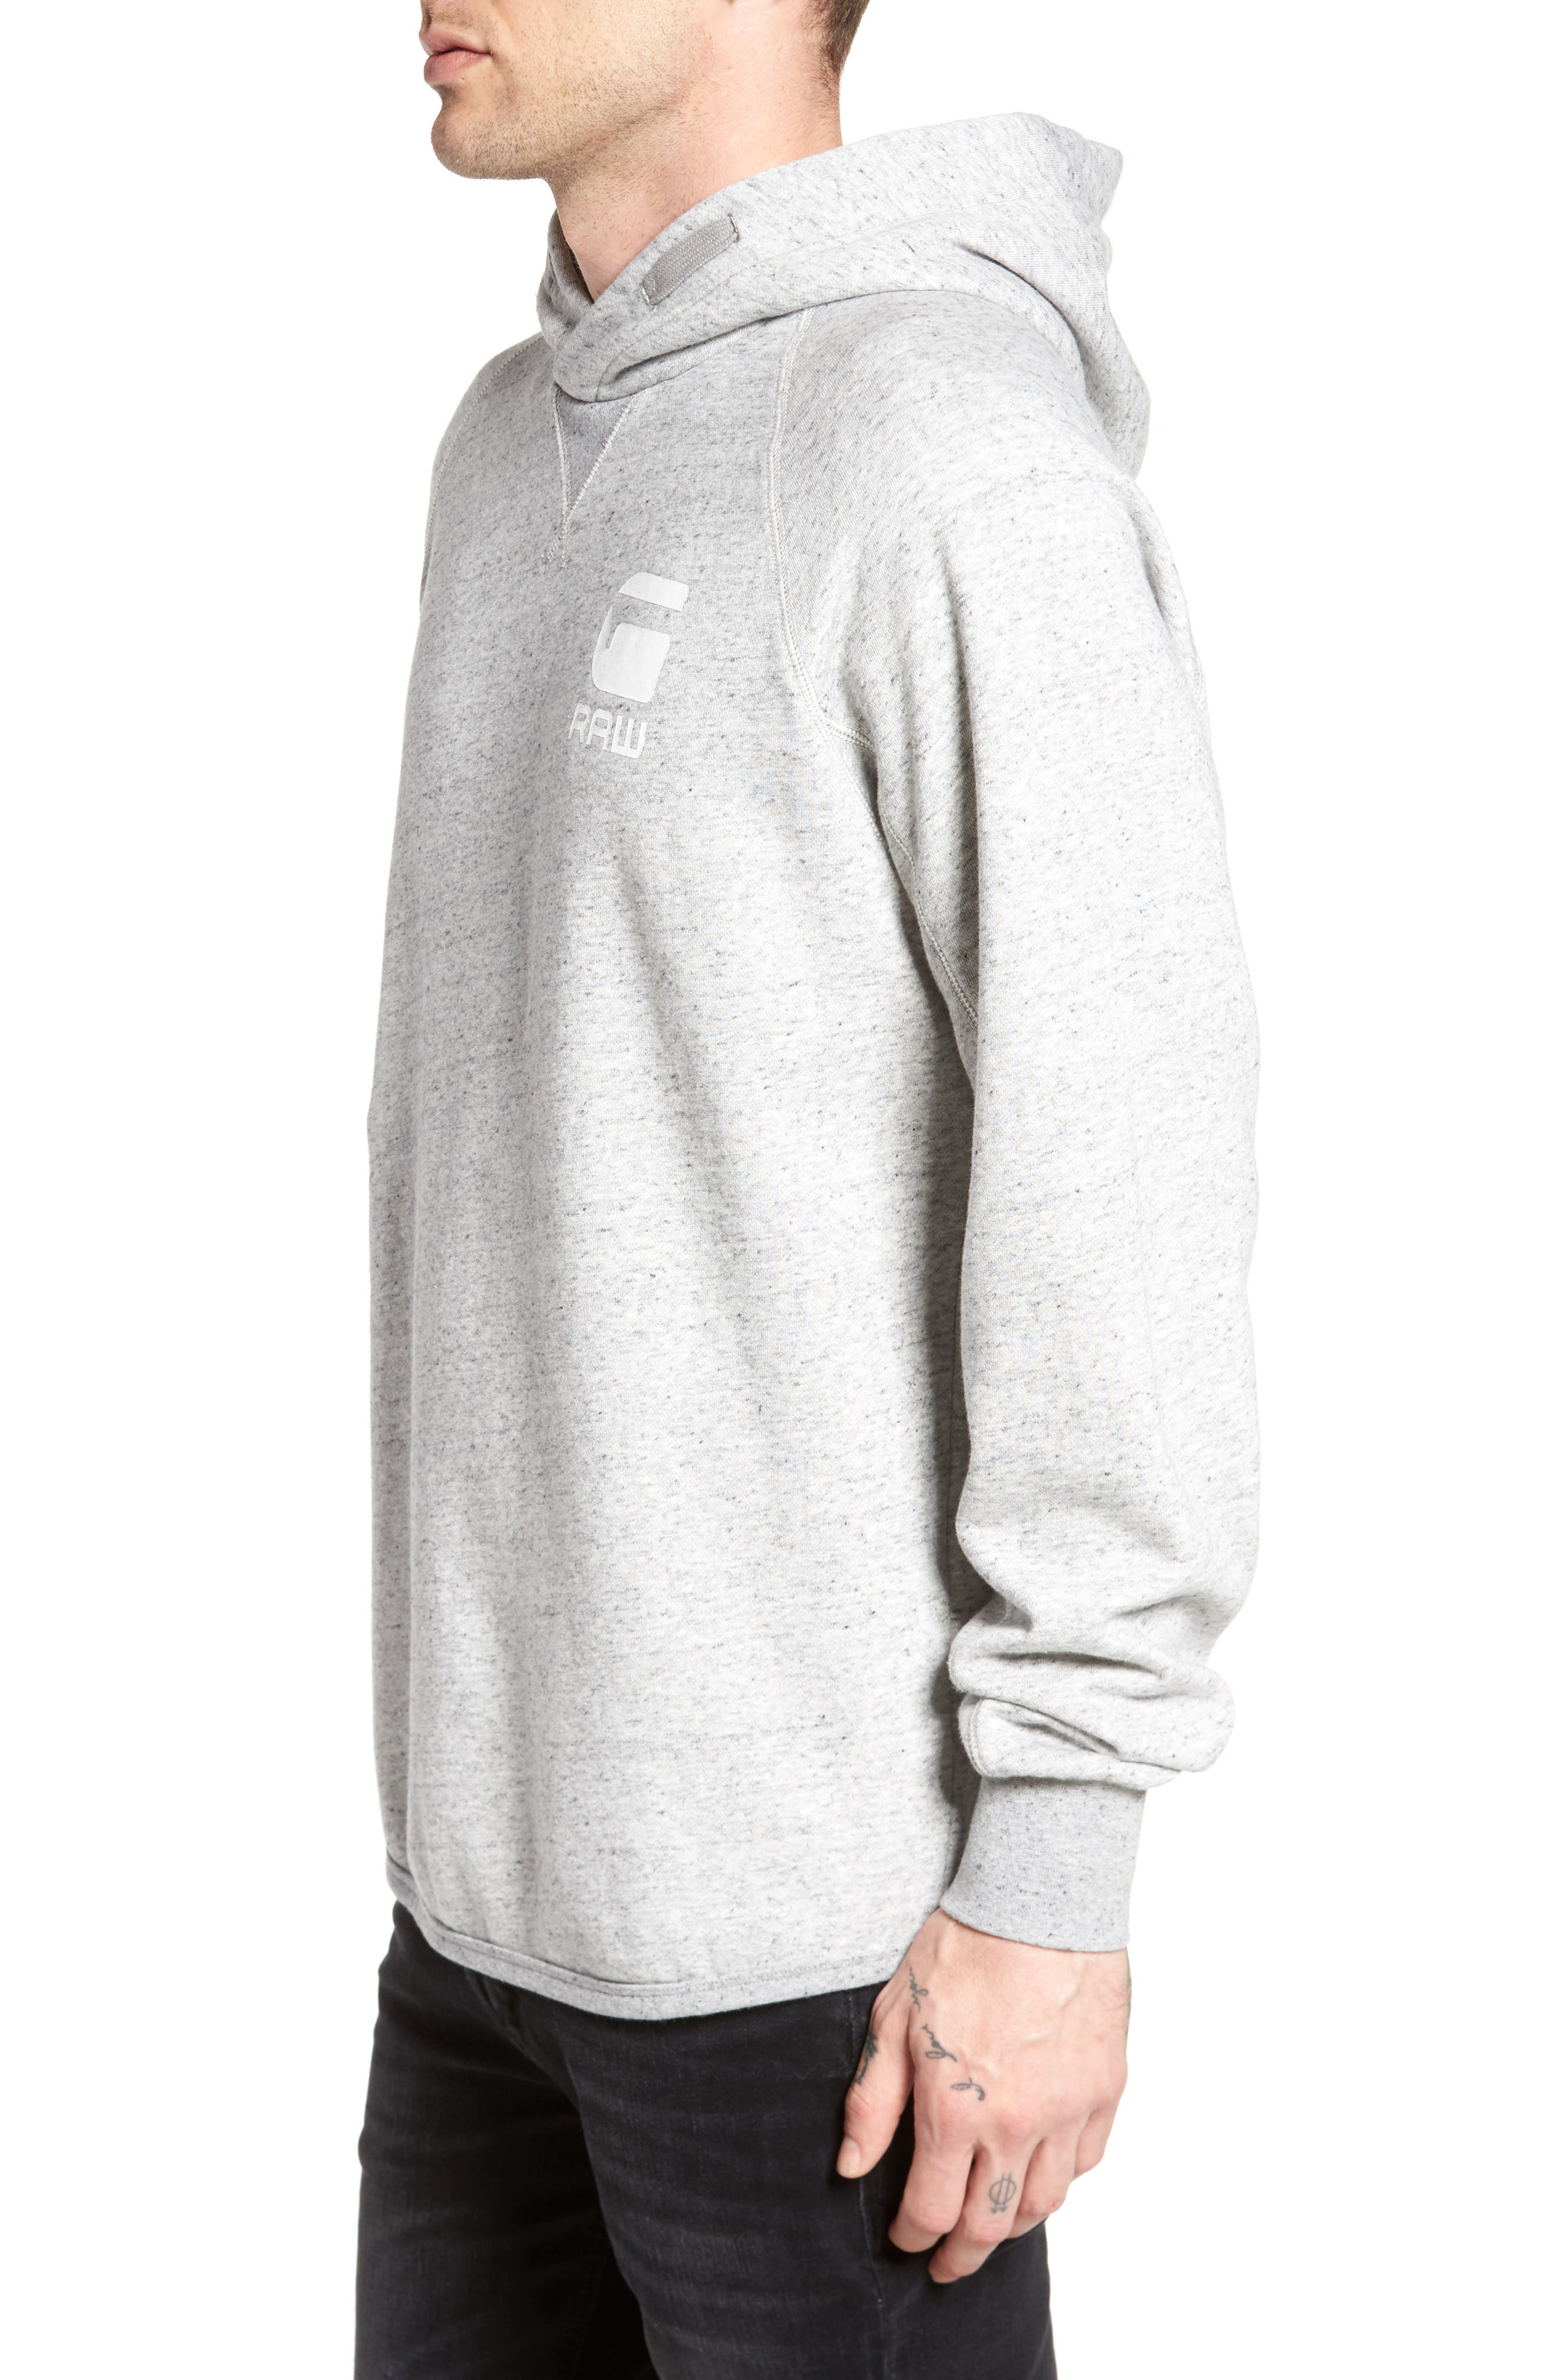 Callow Pullover Hoodie,                             Alternate thumbnail 3, color,                             Grey Heather